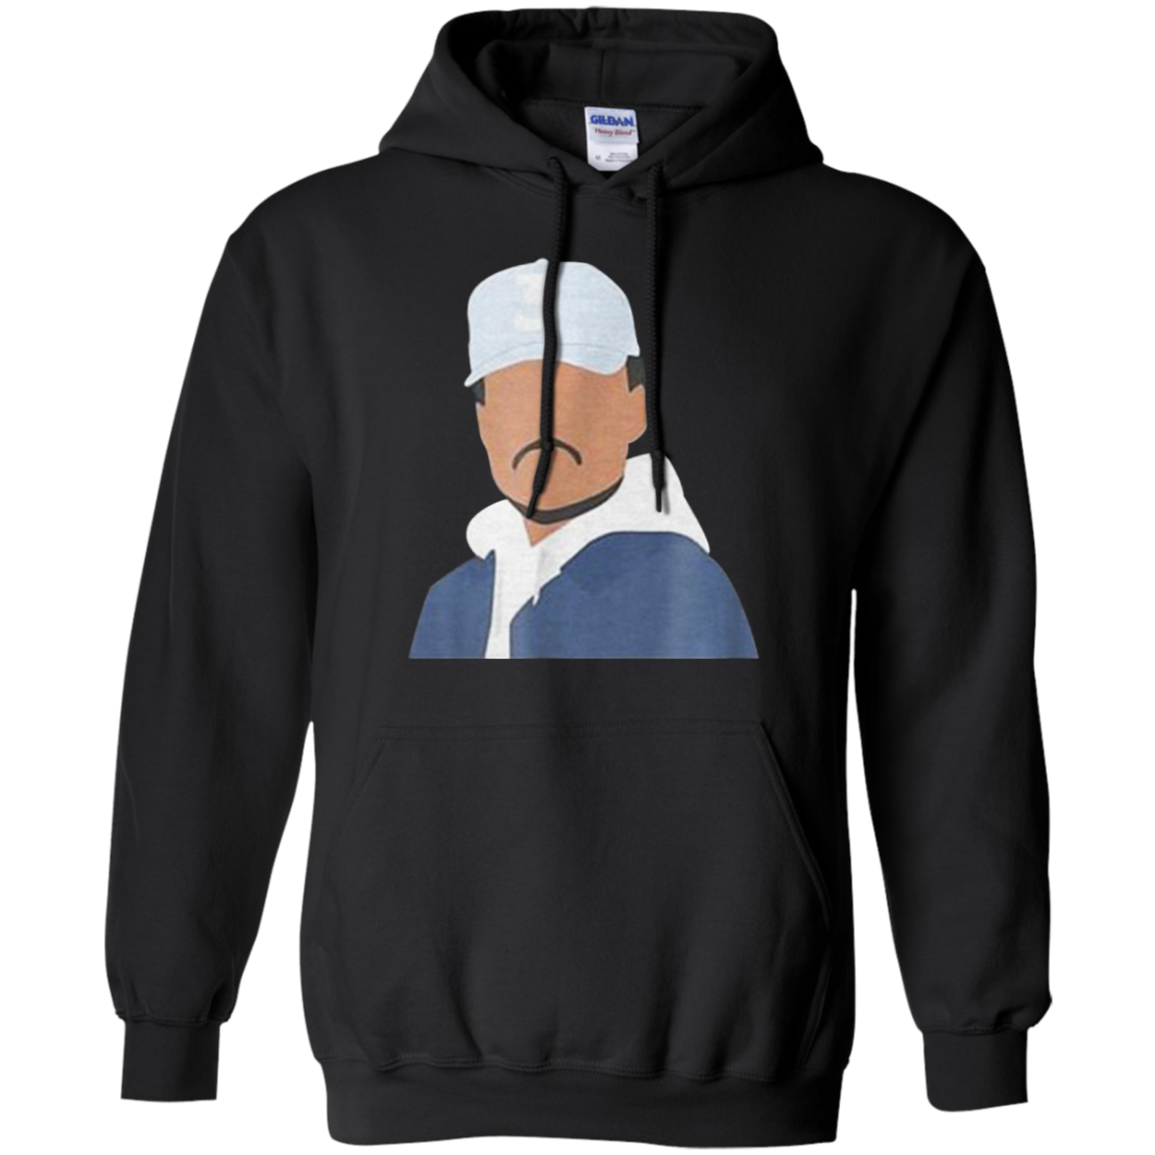 Chance The Rapper Chicago Hip Hop G185 Pullover 8 Oz. Shirts